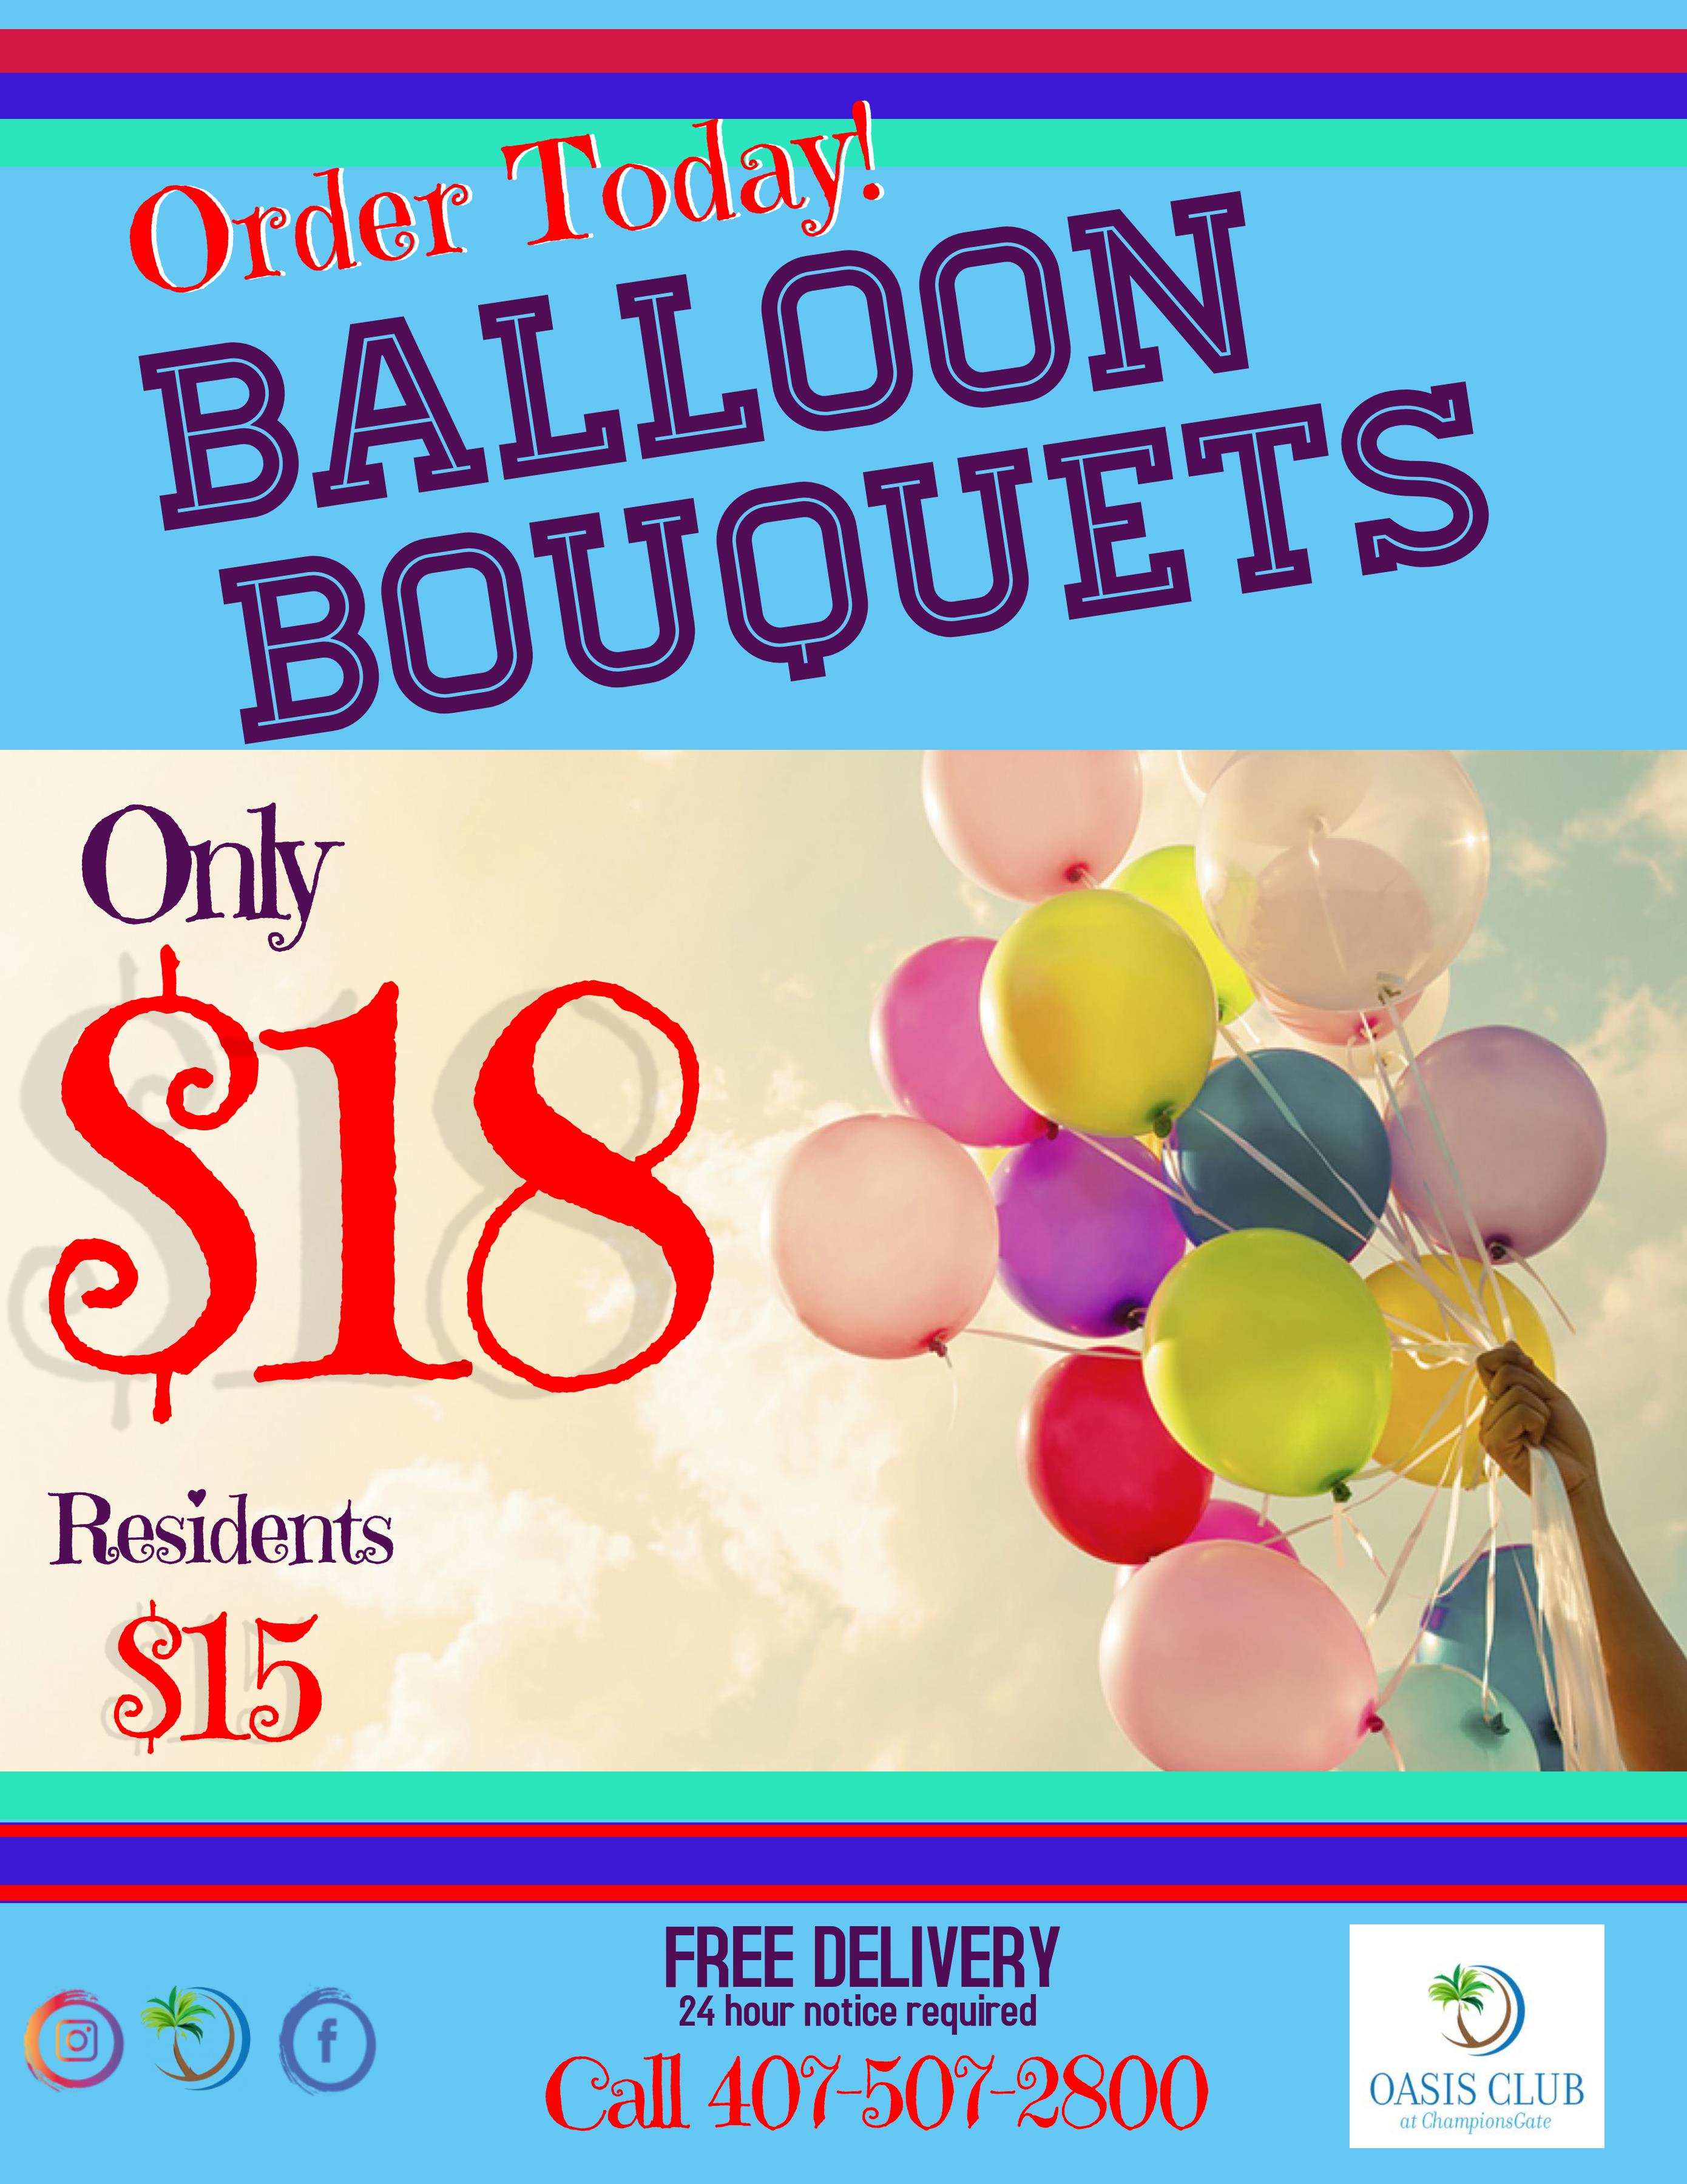 Balloon Bouquet and Delivery  1520 Oasis Club Blvd, Championsgate FL, 33896, 407-507-2800